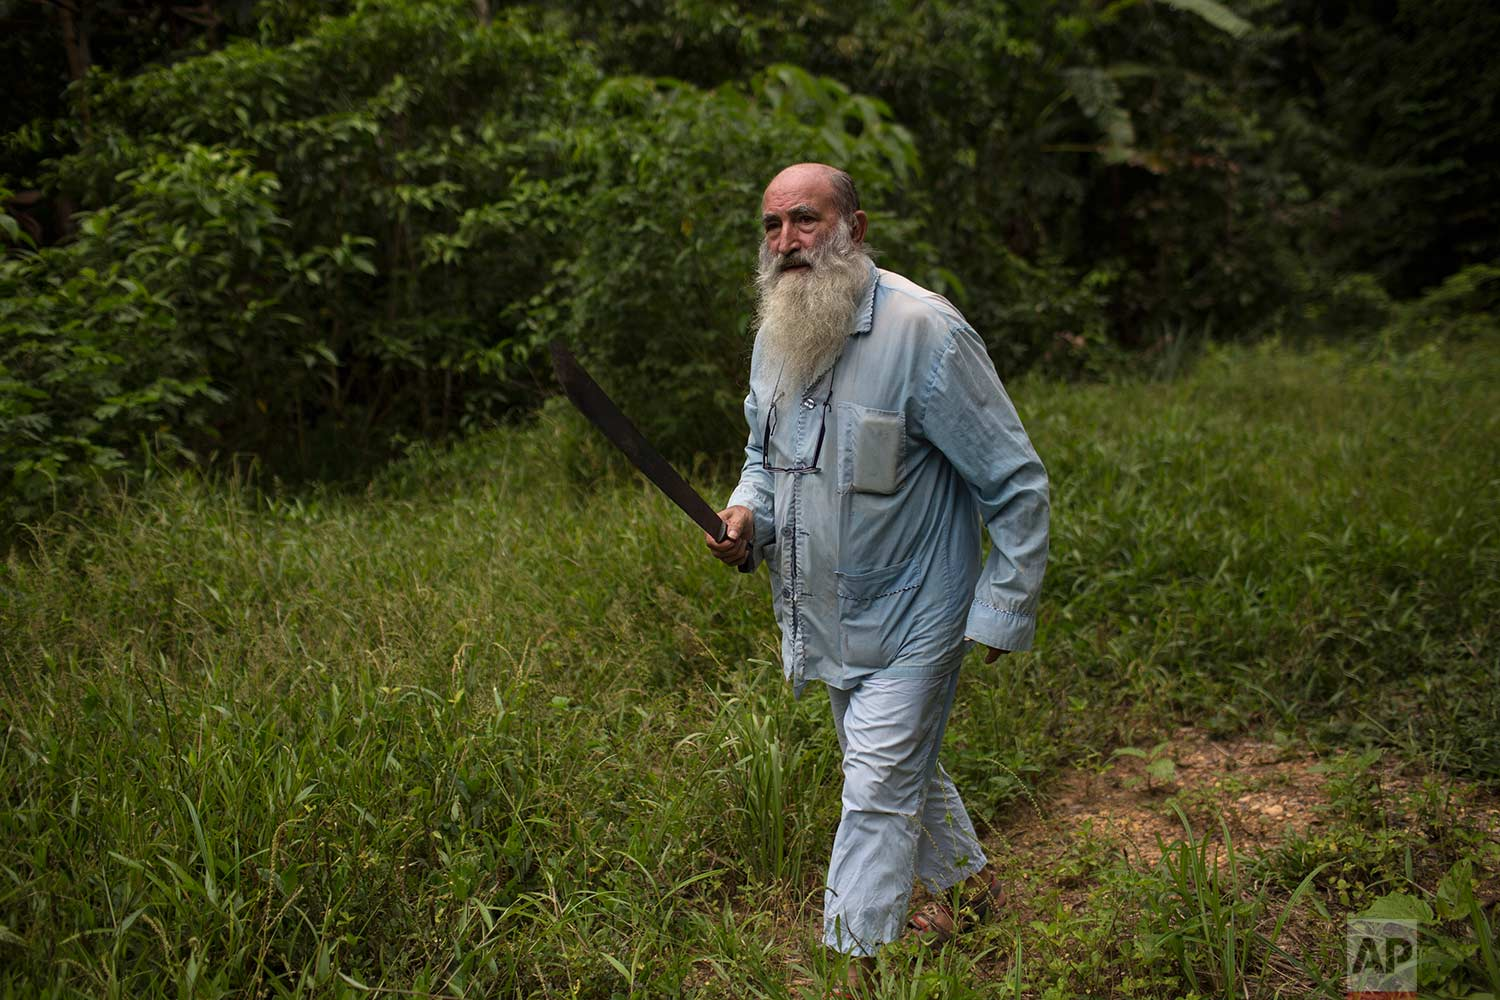 In this Jan. 6, 2018 photo, Father Pablo Zabala, better known as Padre Pablo, wields his machete while harvesting bananas on land owned by the Catholic Church in Boca Colorado, part of Peru's Madre de Dios region in the Amazon. Zabala, 70, has lived in the Amazon for 24 years and spent the last 10 running a Catholic parish that works with about two dozen mining camps. (AP Photo/Rodrigo Abd) |  See these photos on AP Images